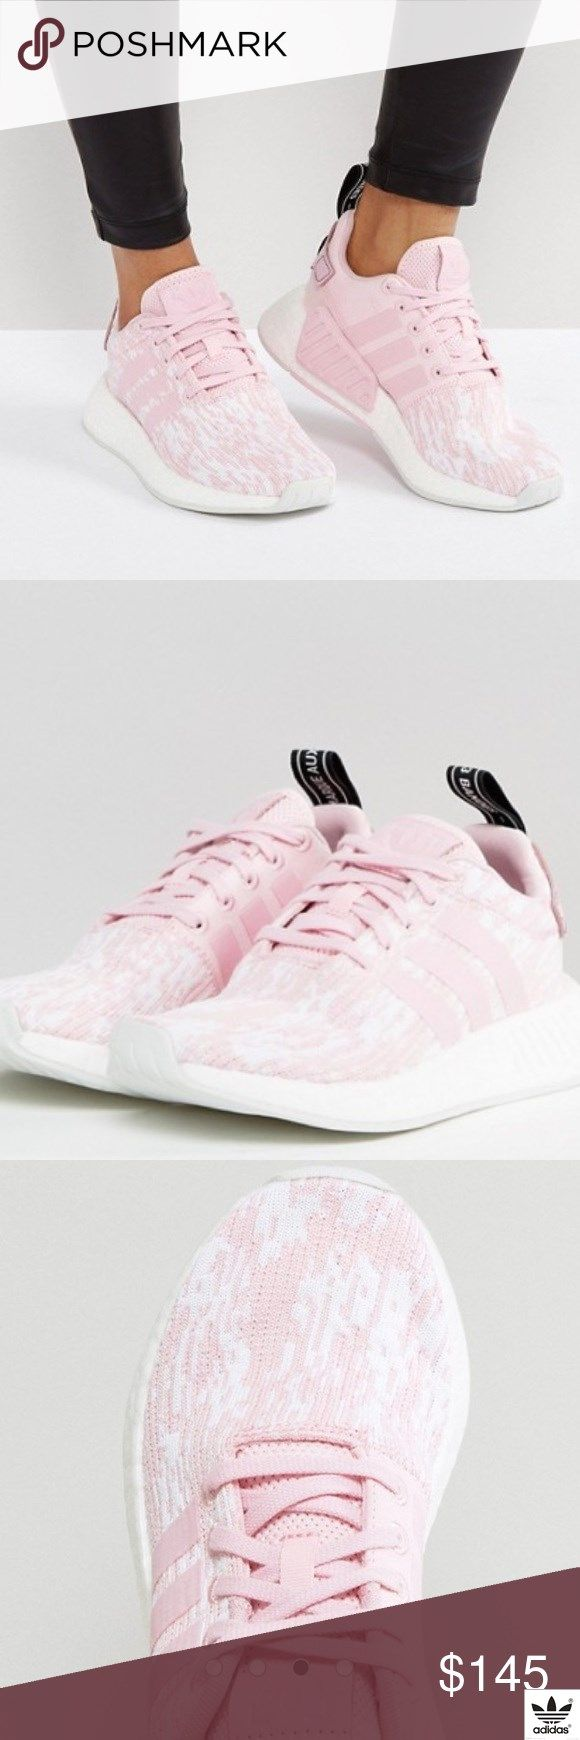 76ccd699ed7a2 Adidas Original Sneakers Pale Pink NMD R2 Size 6.5 brand new